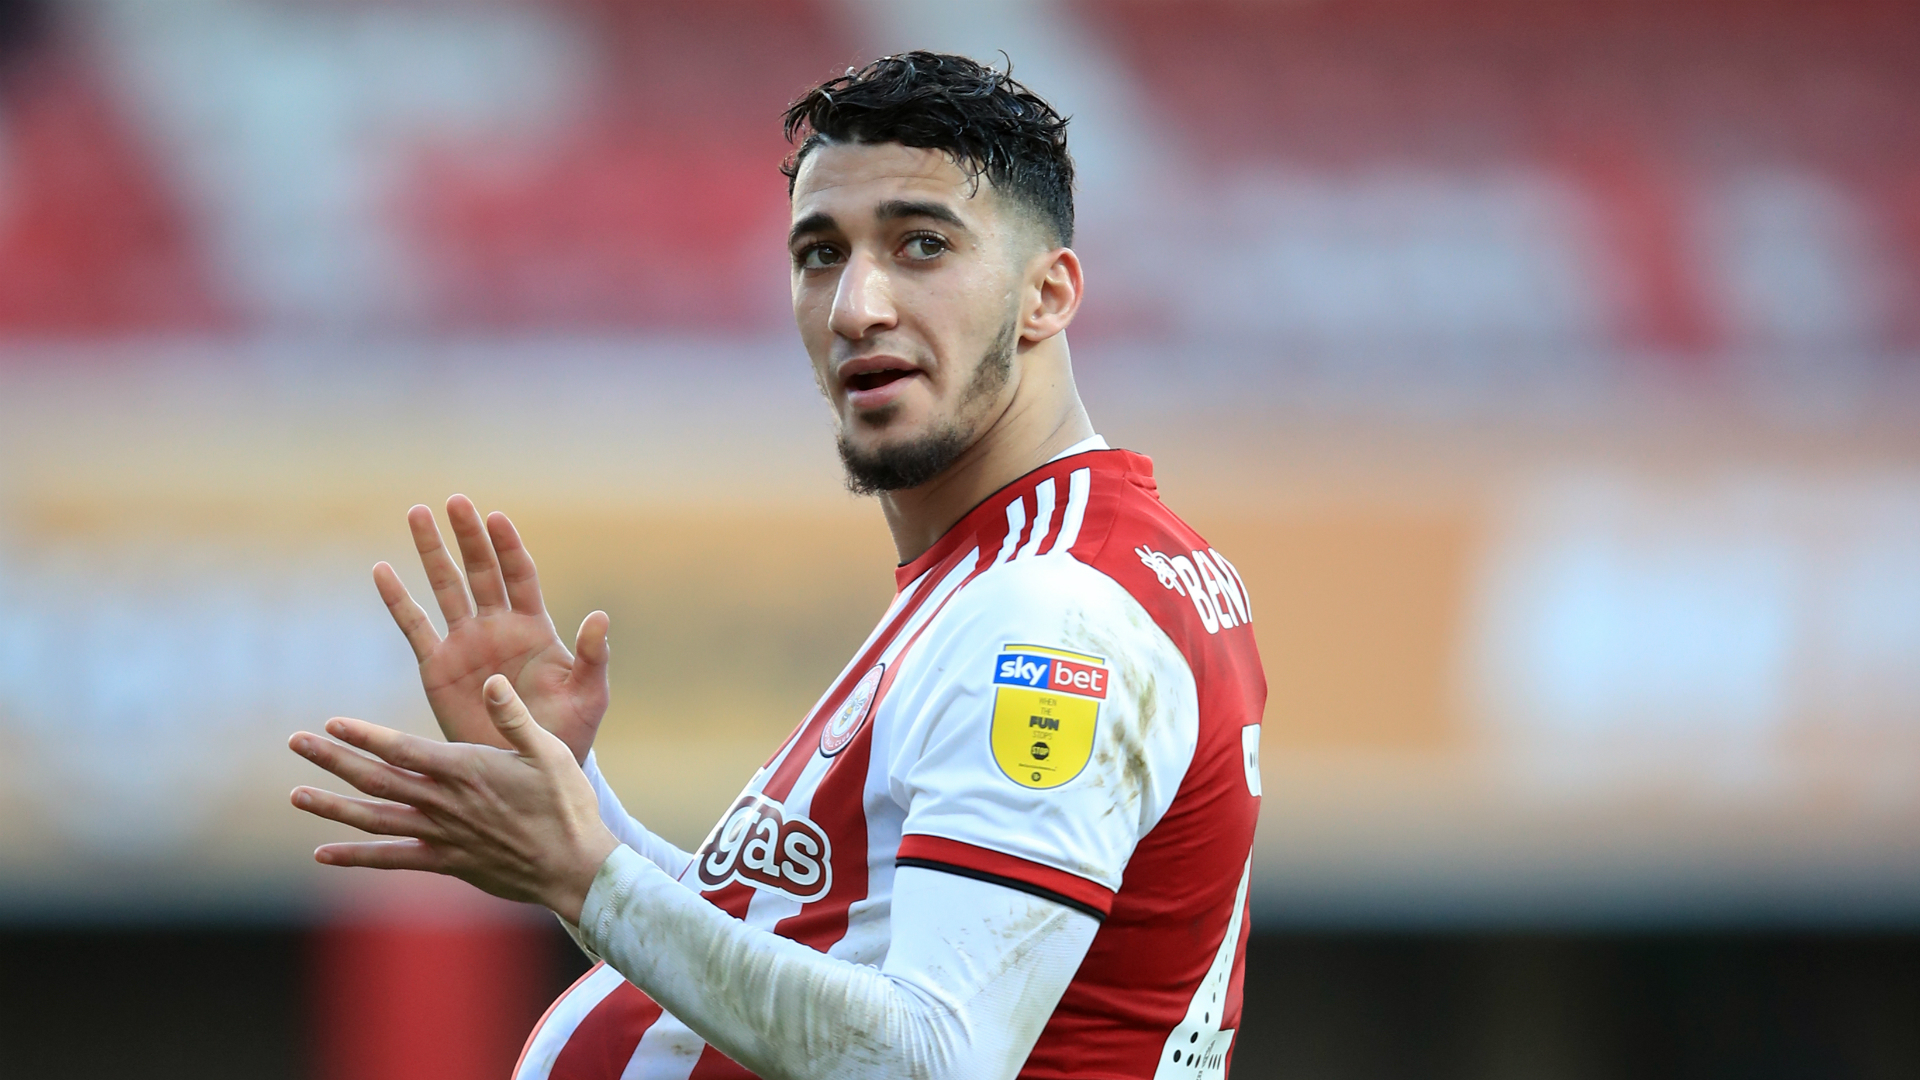 Chelsea target Benrahma shines despite Brentford loss against Stoke City